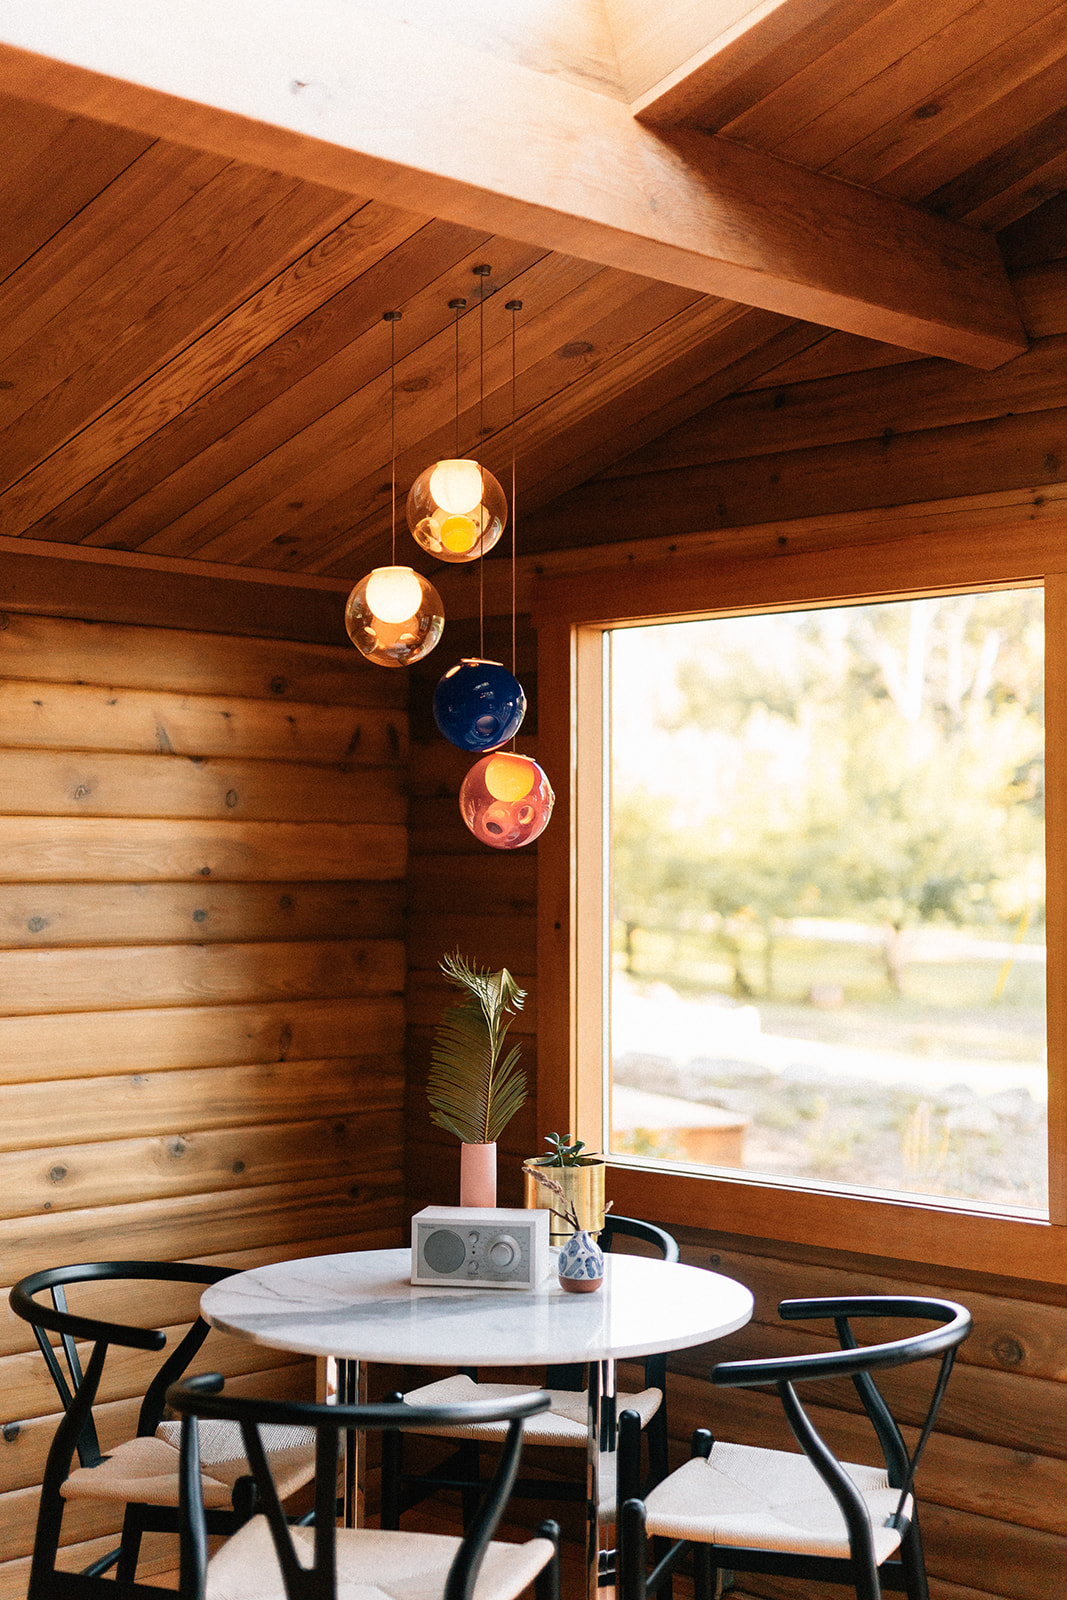 Custom Lighting - The interiors are illuminated with Bocci lighting, and CHARRED cedar LED pendants. bathrooms have custom arched backlit mirrors, illuminating the logs.